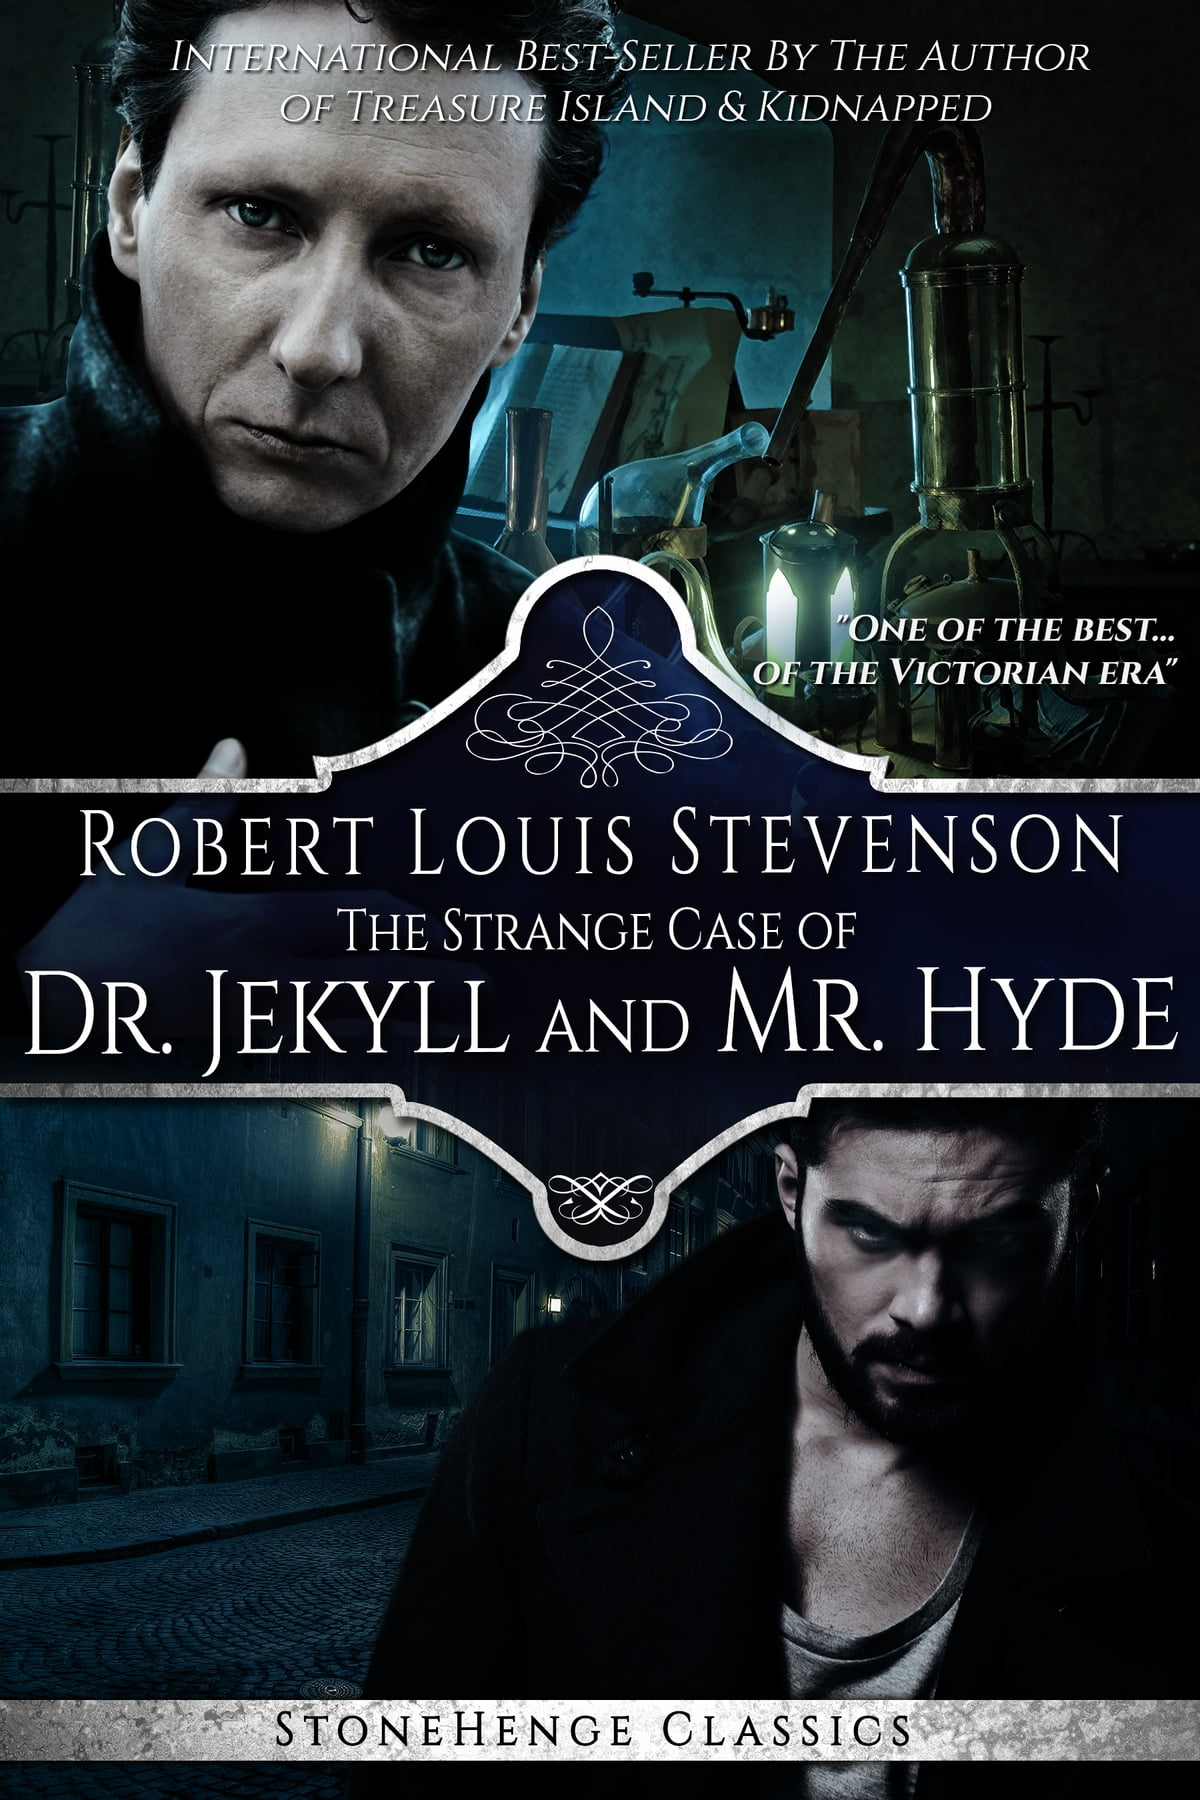 The Strange Case of Dr. Jekyll and Mr. Hyde (Stonehenge